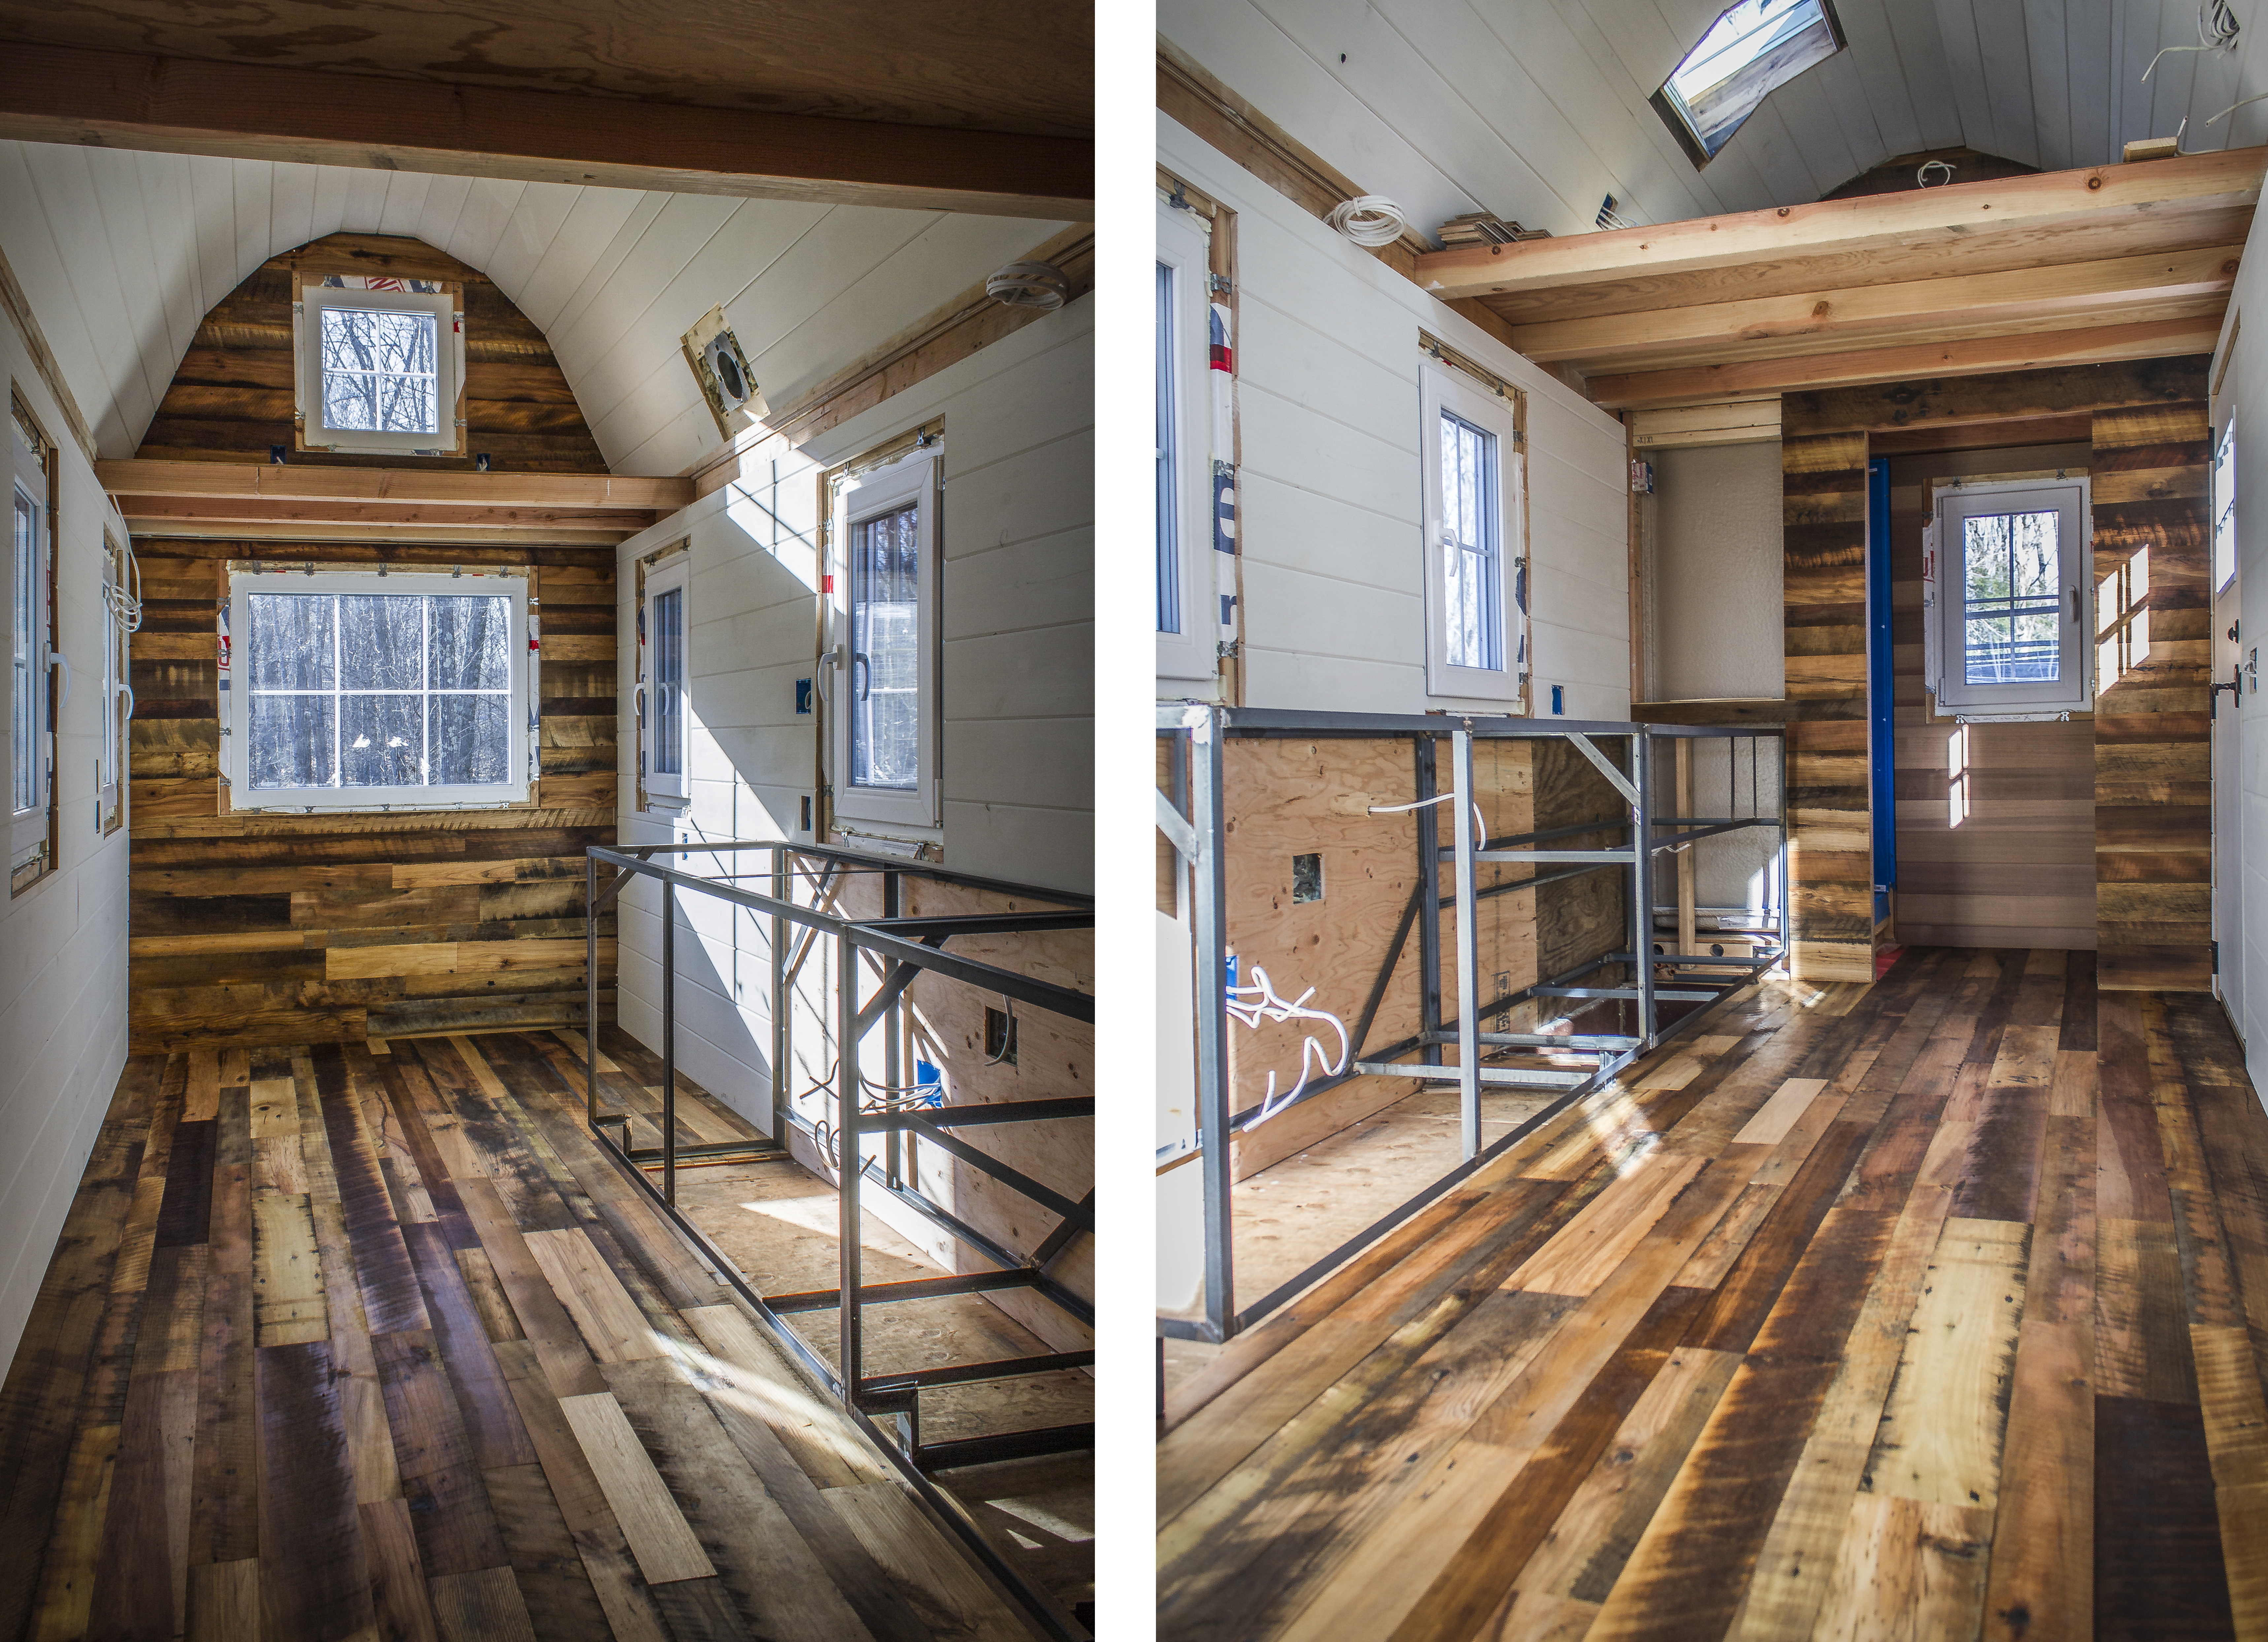 Gallery Our Tiny House Construction Since 2013